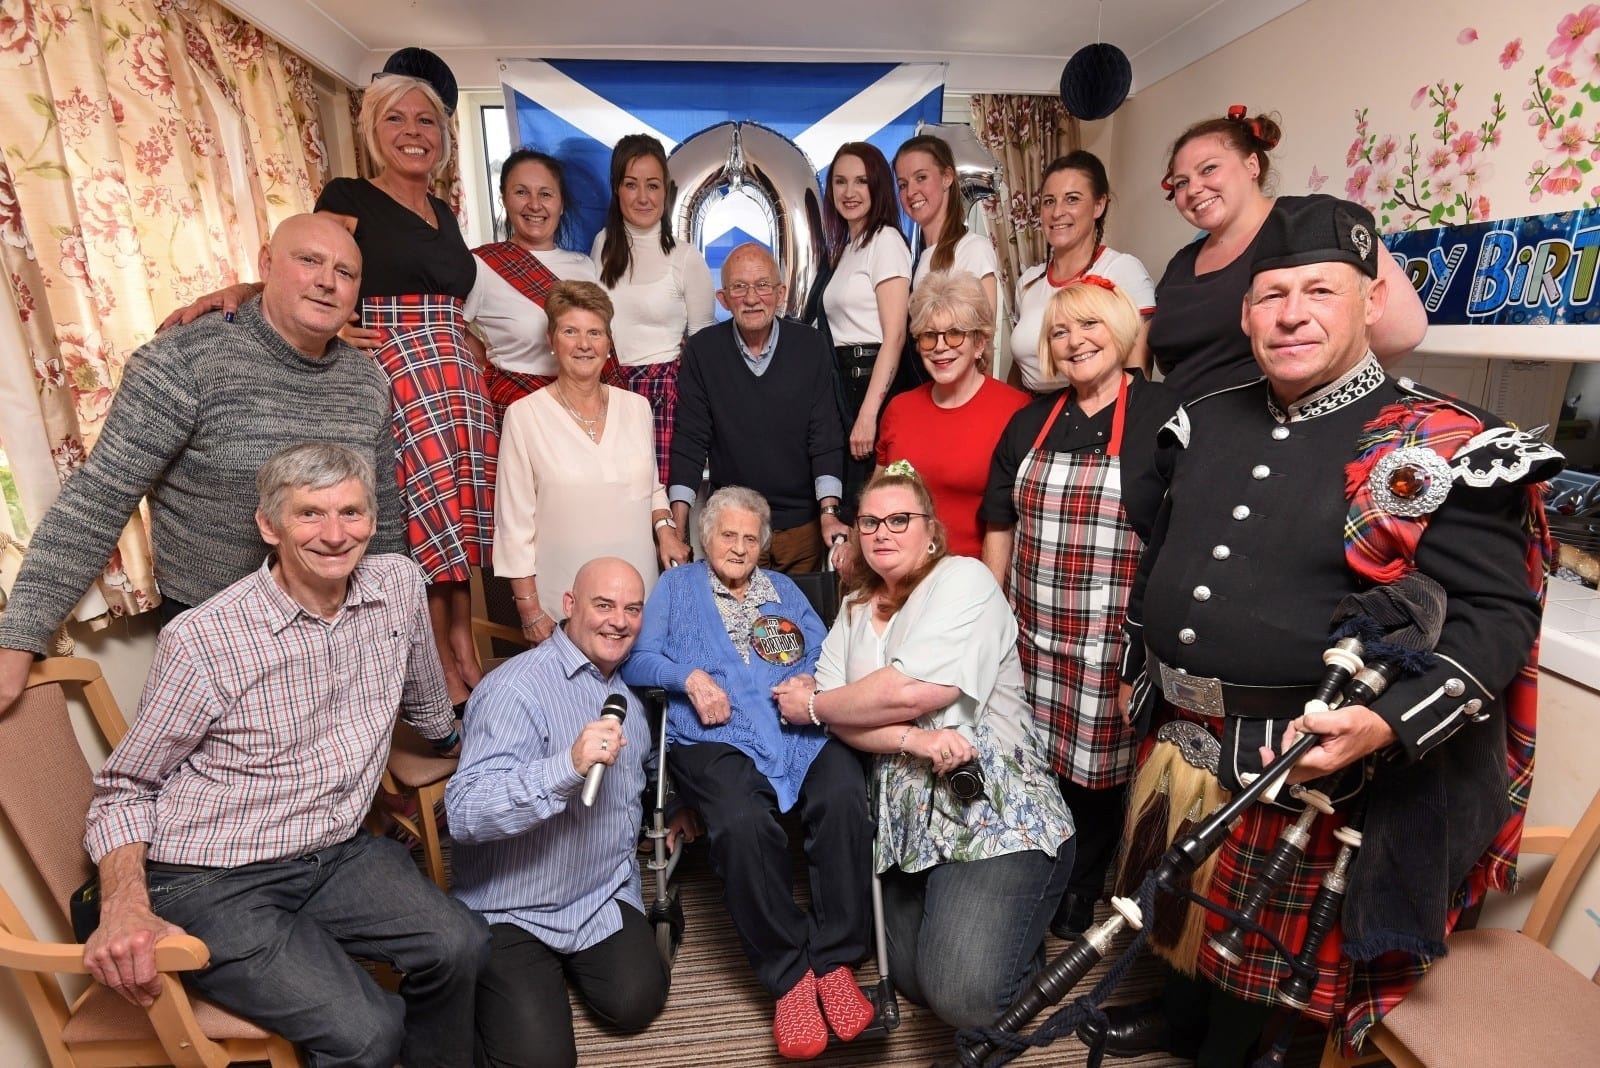 A Great-Great-Gran Living Down South Celebrated Her 101st Birthday Party With Bagpipes And Tartan Dress Code In A Nod To Her Scots Heritage